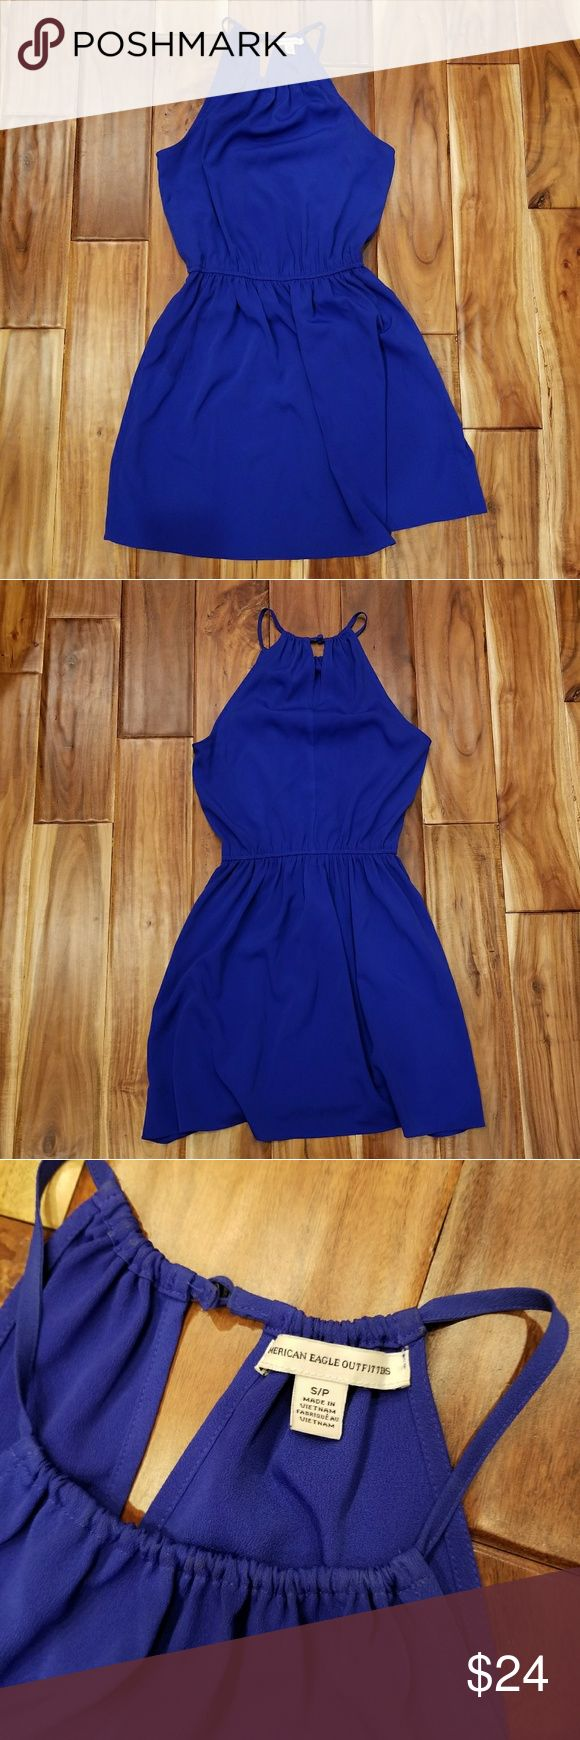 American Eagle Outfitters Strapless Dress American Eagle Outfitters Strapless Dress. Great condition! Key hole back. Elastic waist band. No trades, offers welcome! American Eagle Outfitters Dresses Midi #americaneagleoutfitters